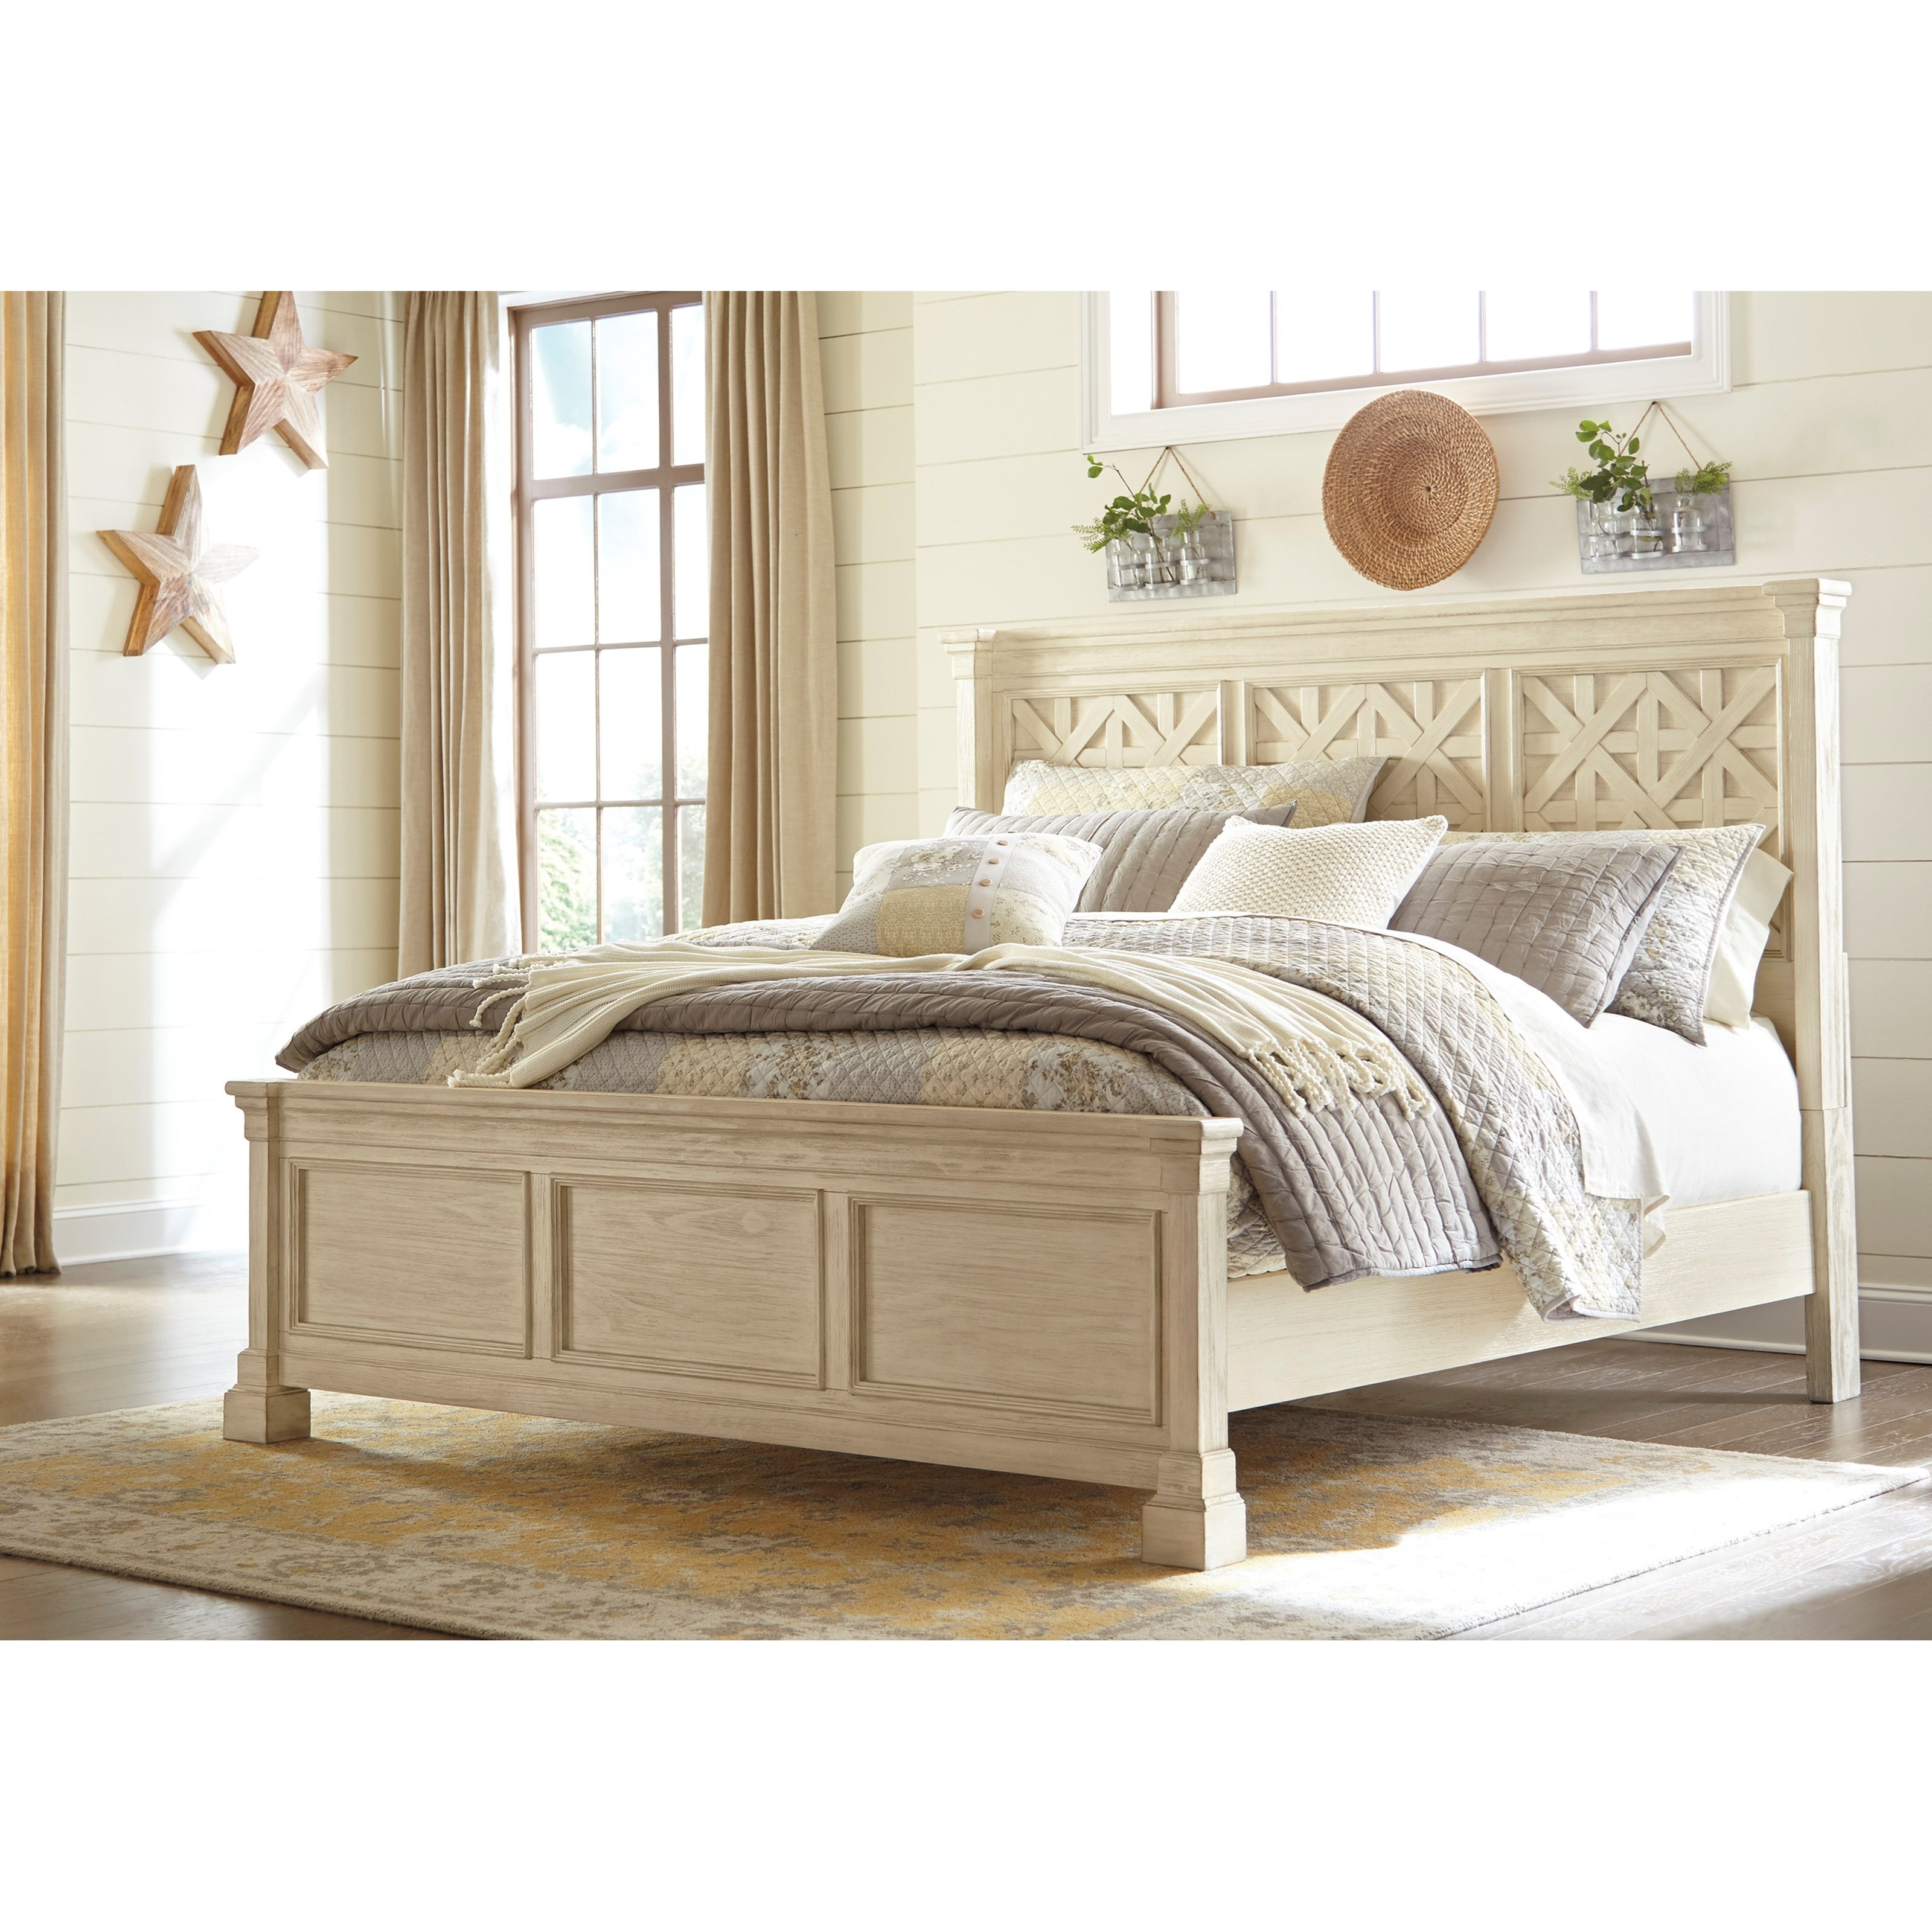 Birlanny Panel Bedroom Set Signature Design 3 Reviews: Signature Design By Ashley Bolanburg California King Panel